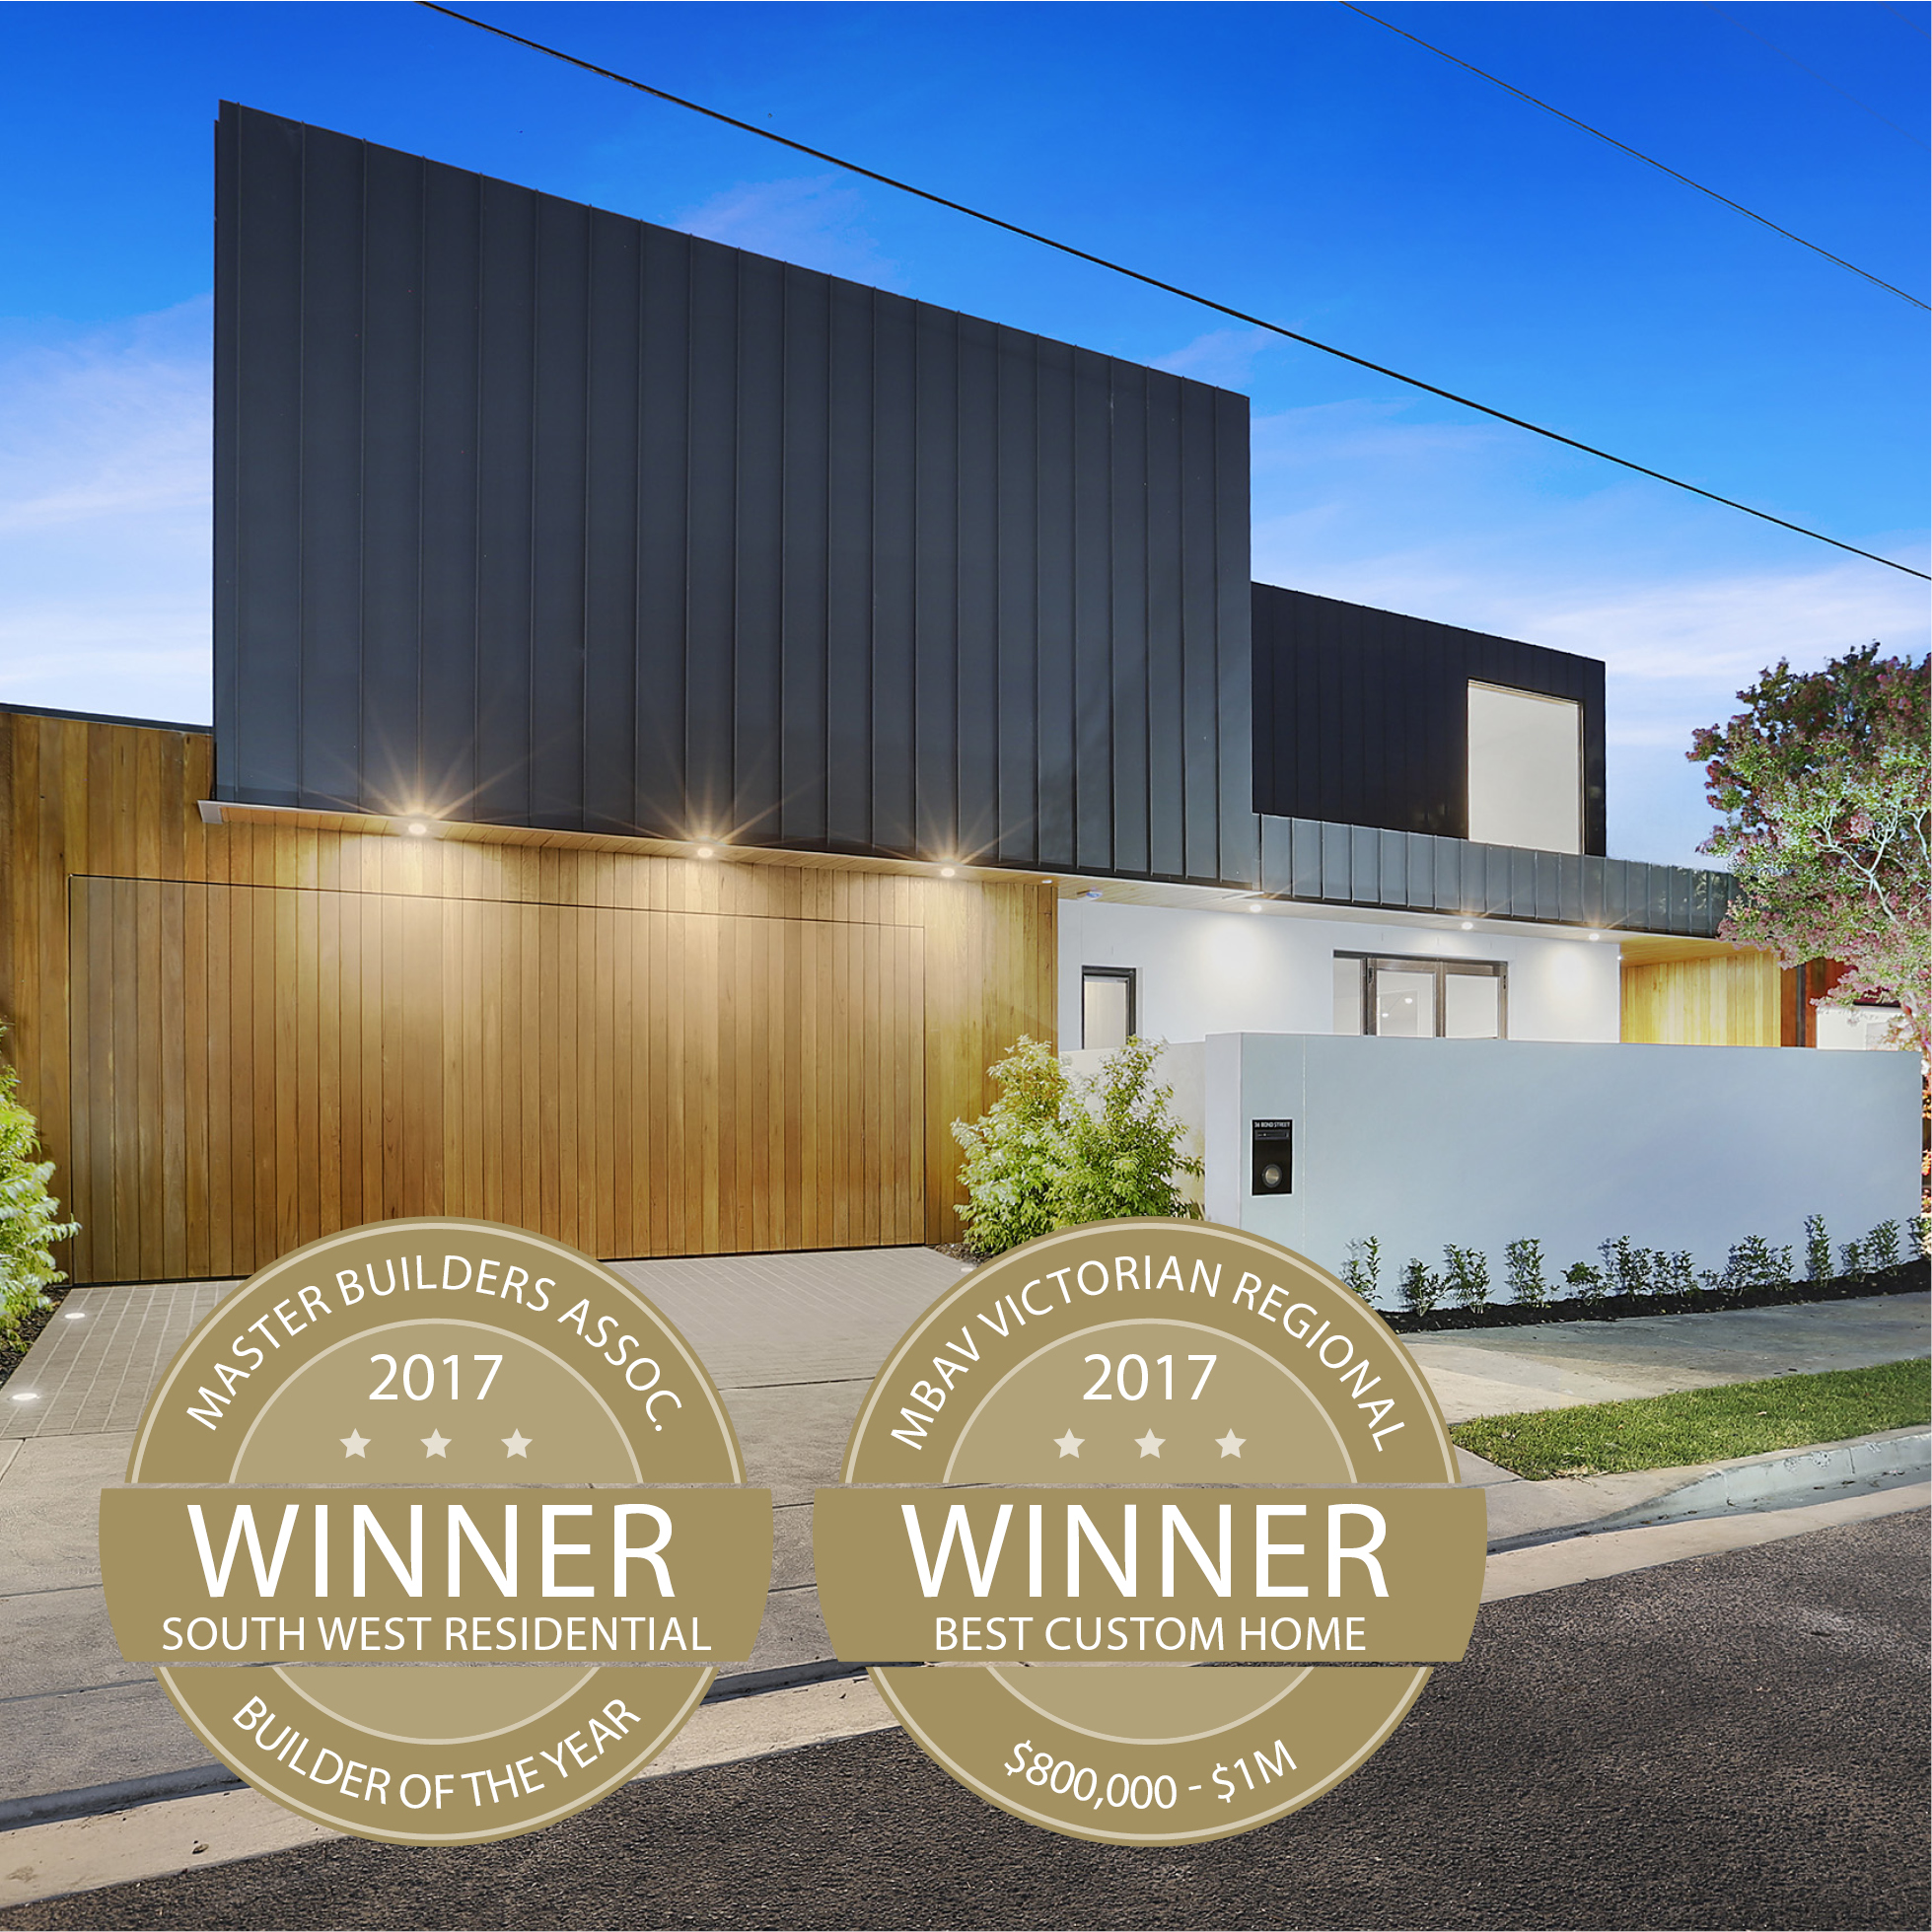 Signature Homes Geelong receive top honours, named 2017 South West Master Builder of the Year